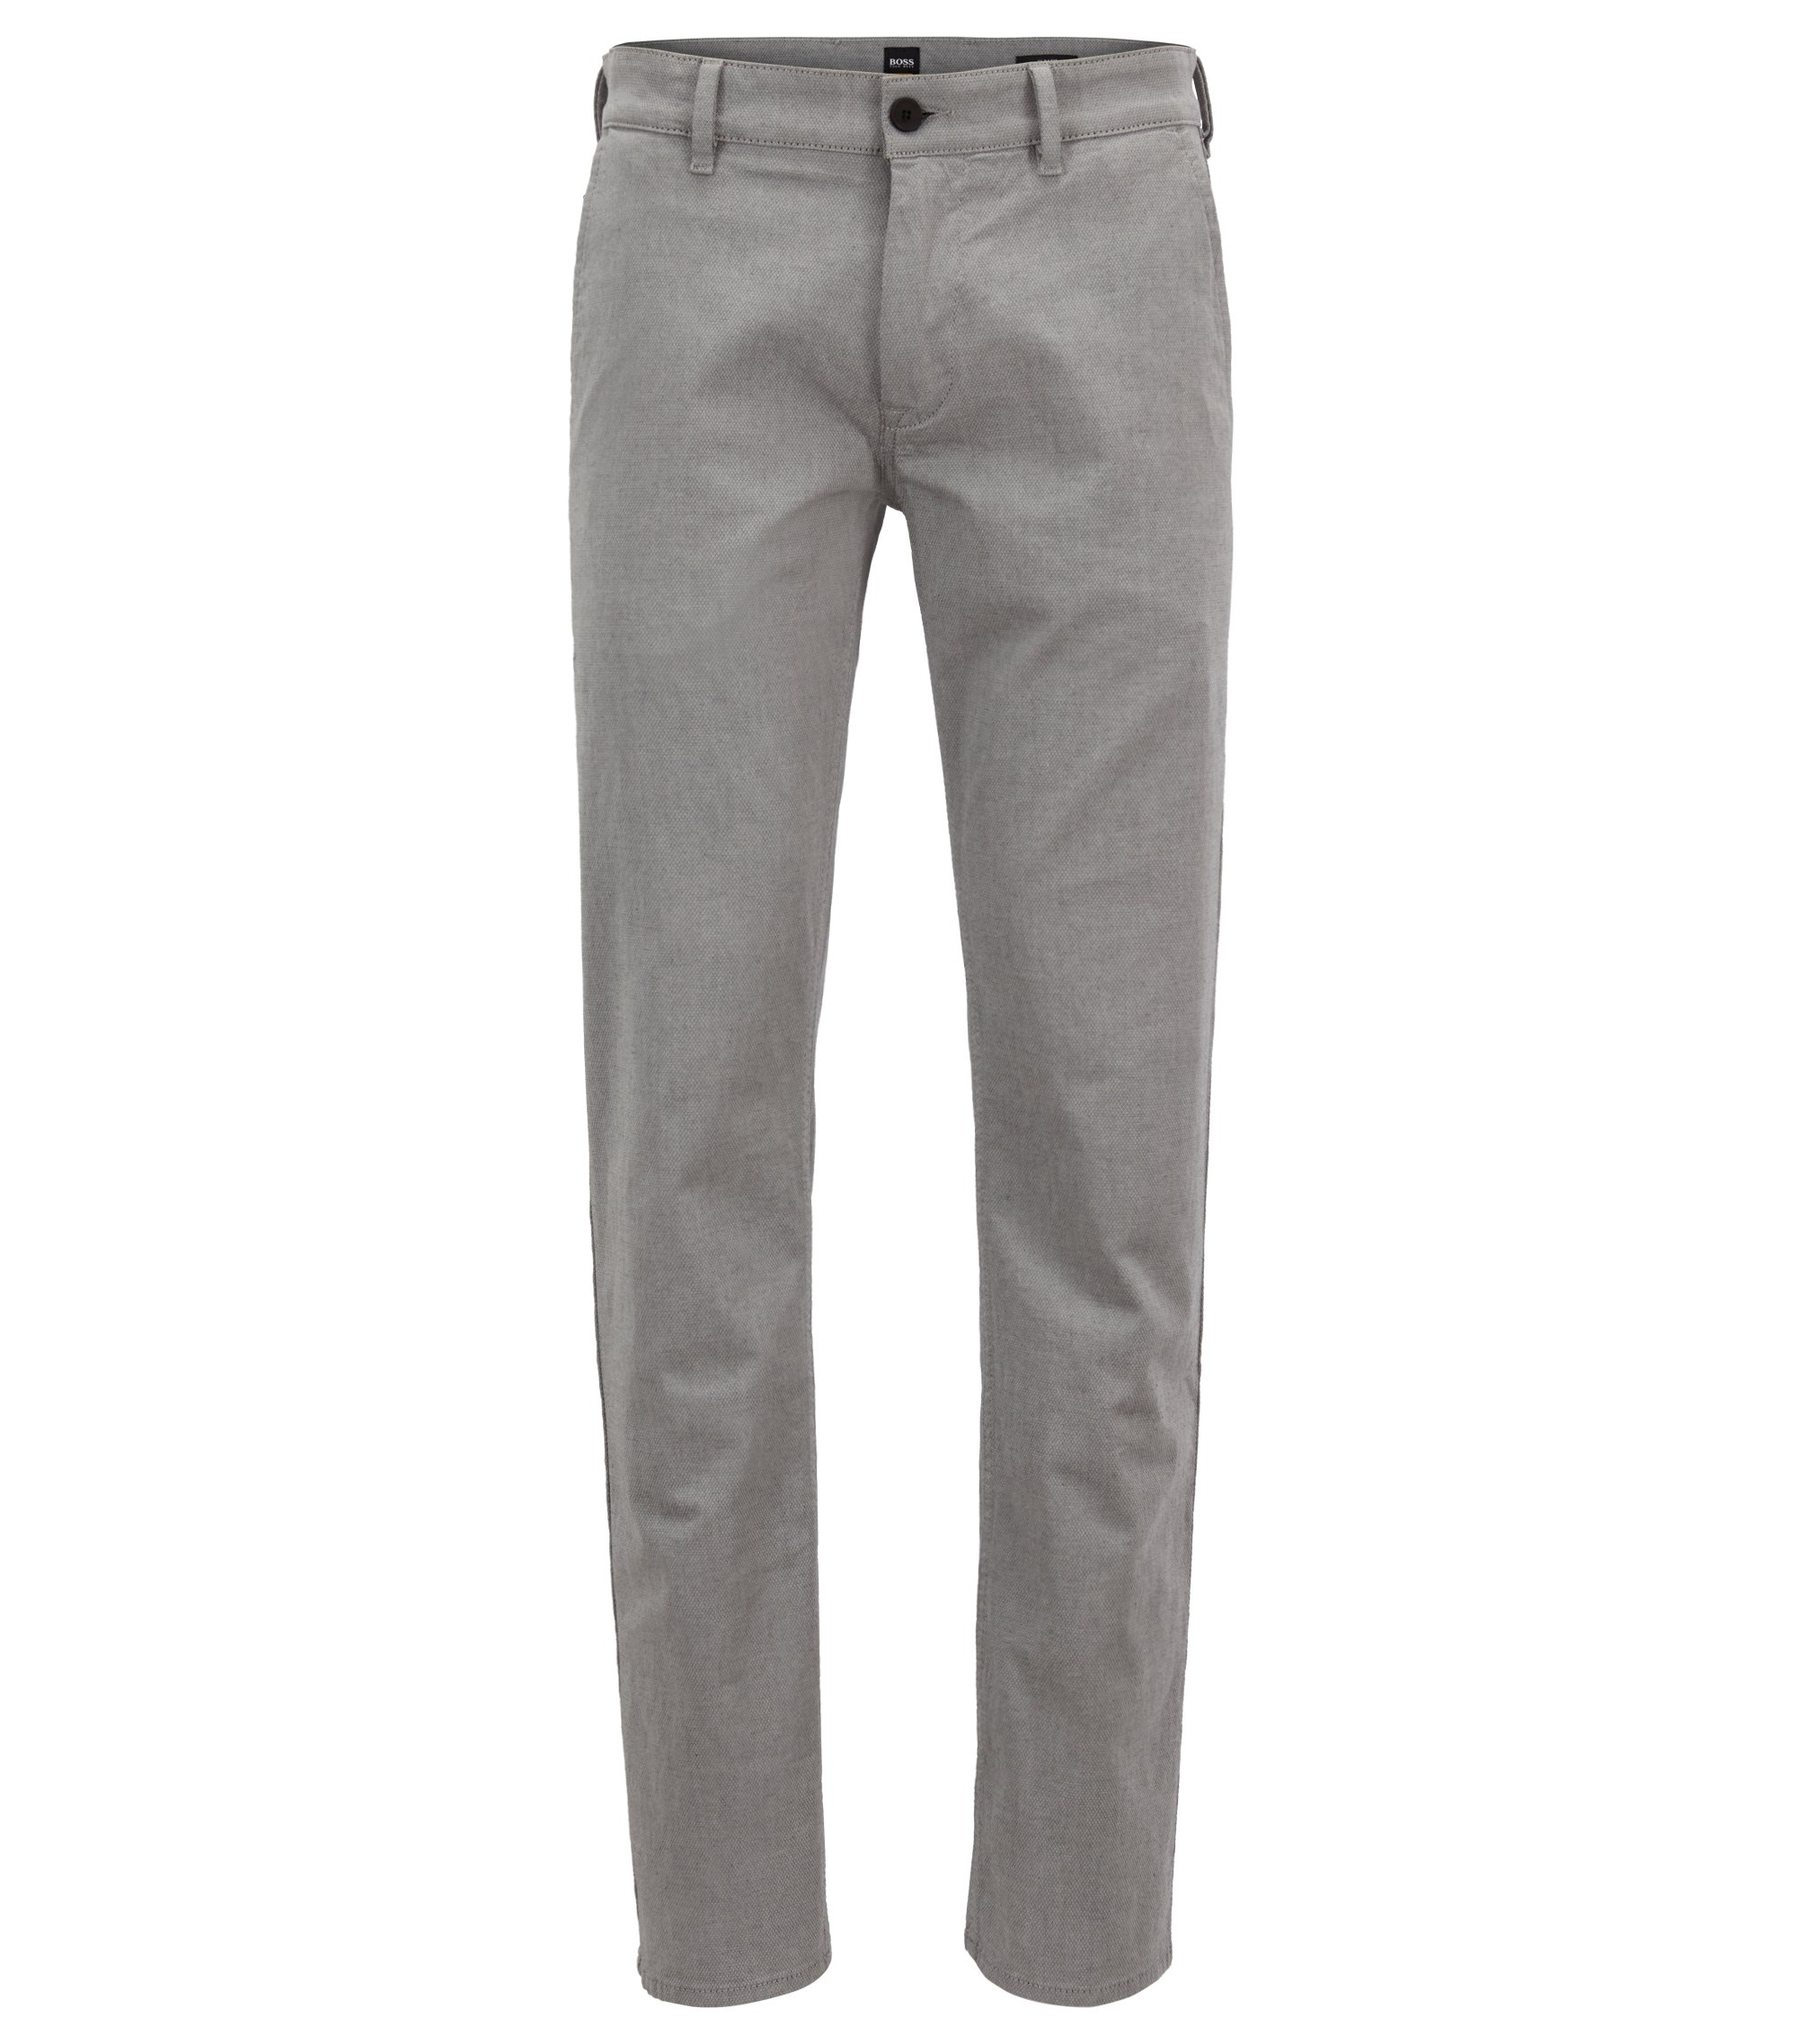 Pantalon Slim Fit en coton stretch microstructuré, Gris